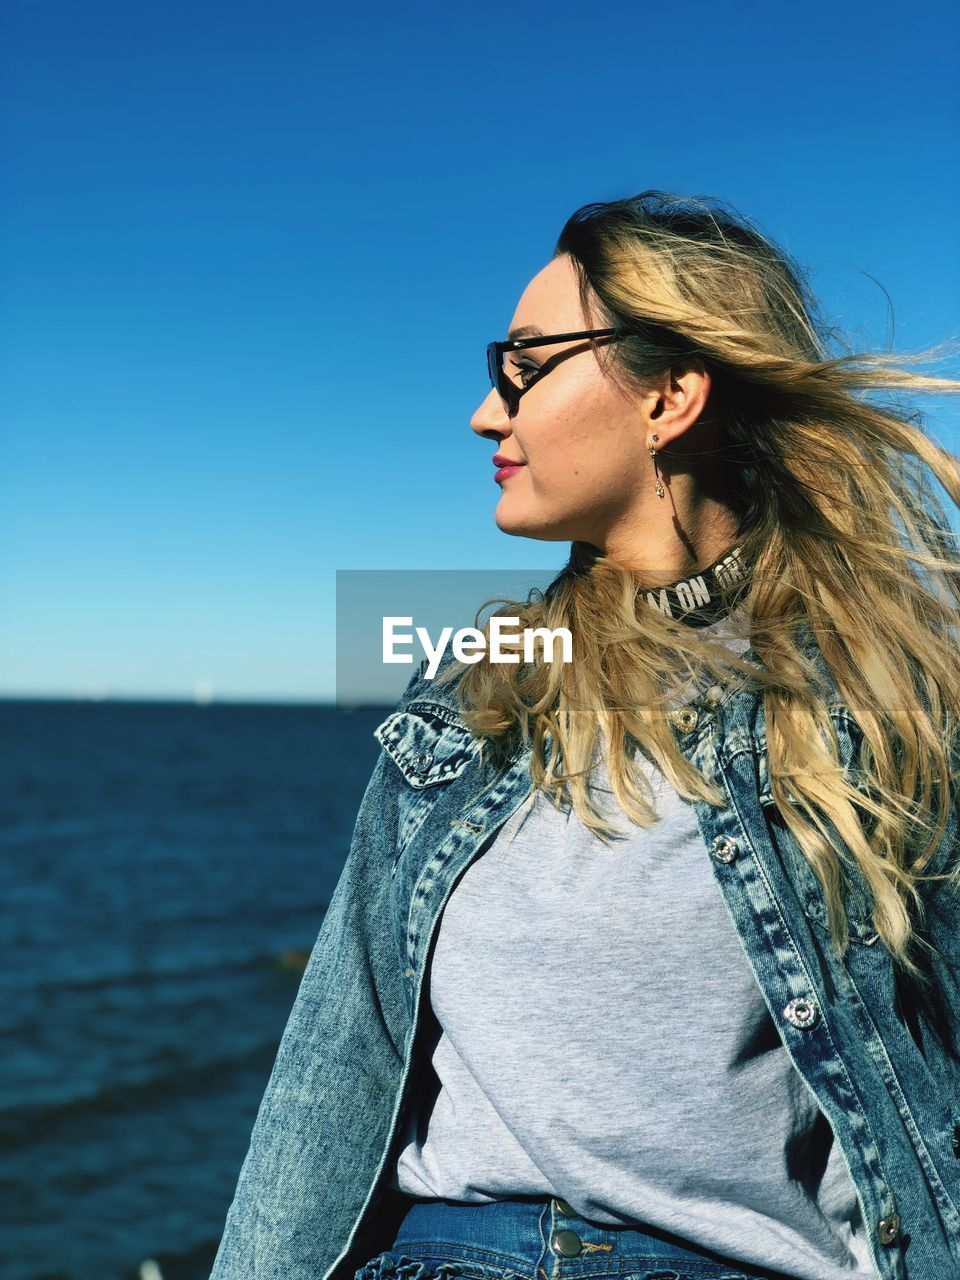 glasses, one person, lifestyles, real people, hair, sky, water, leisure activity, long hair, young adult, young women, hairstyle, eyeglasses, blue, casual clothing, sea, clear sky, standing, looking, fashion, outdoors, beautiful woman